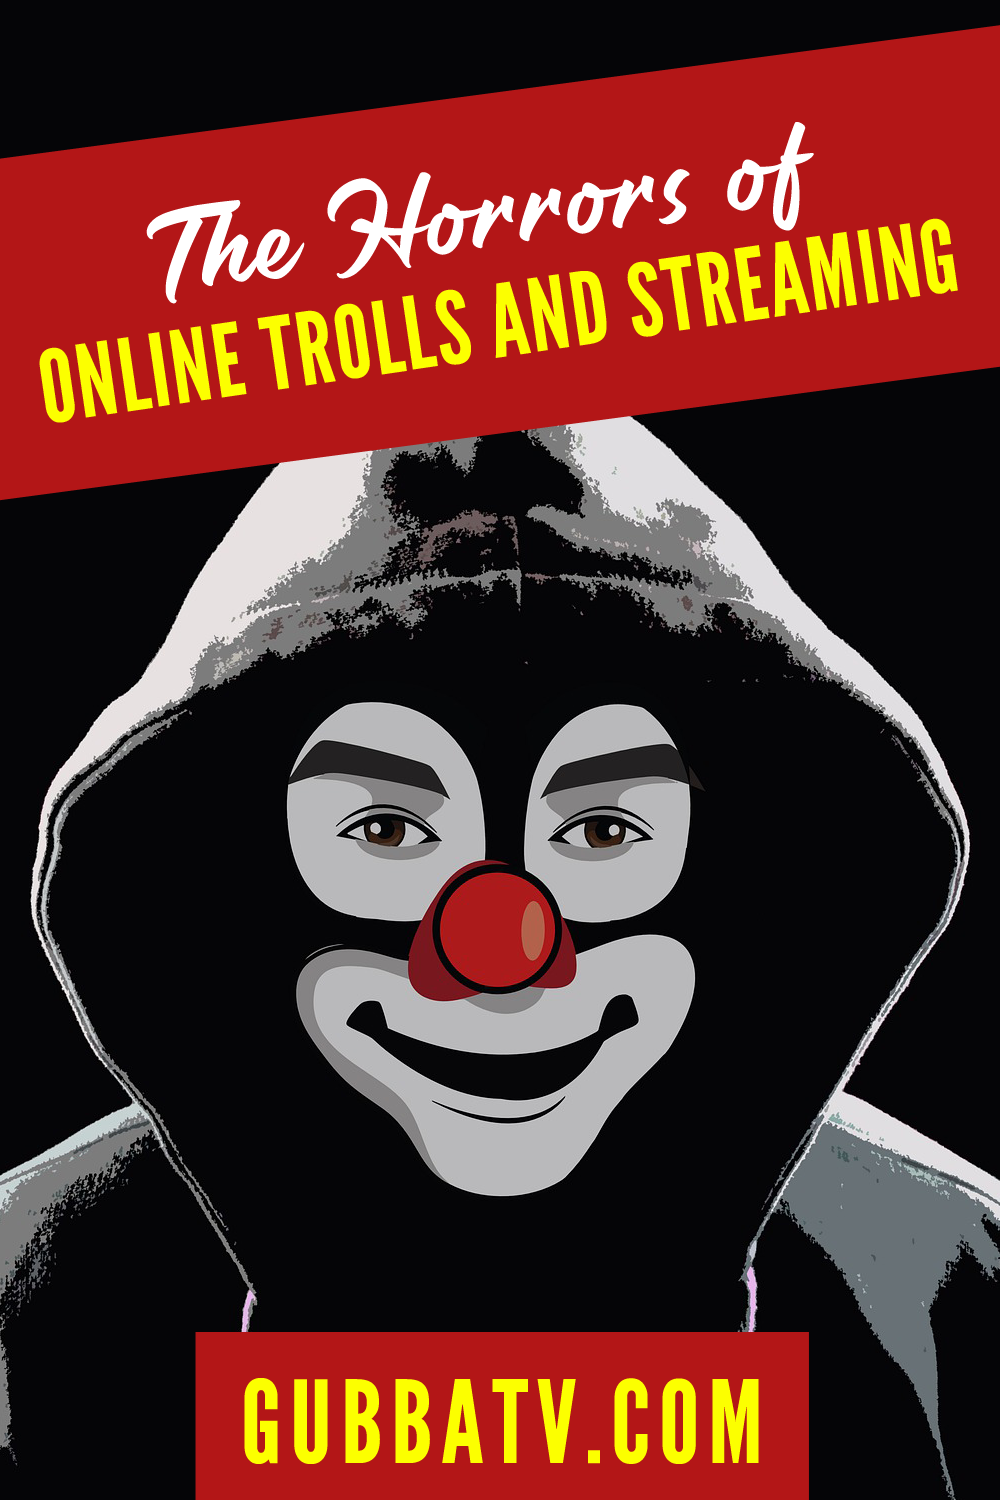 The Horrors of Online Trolls and Streaming